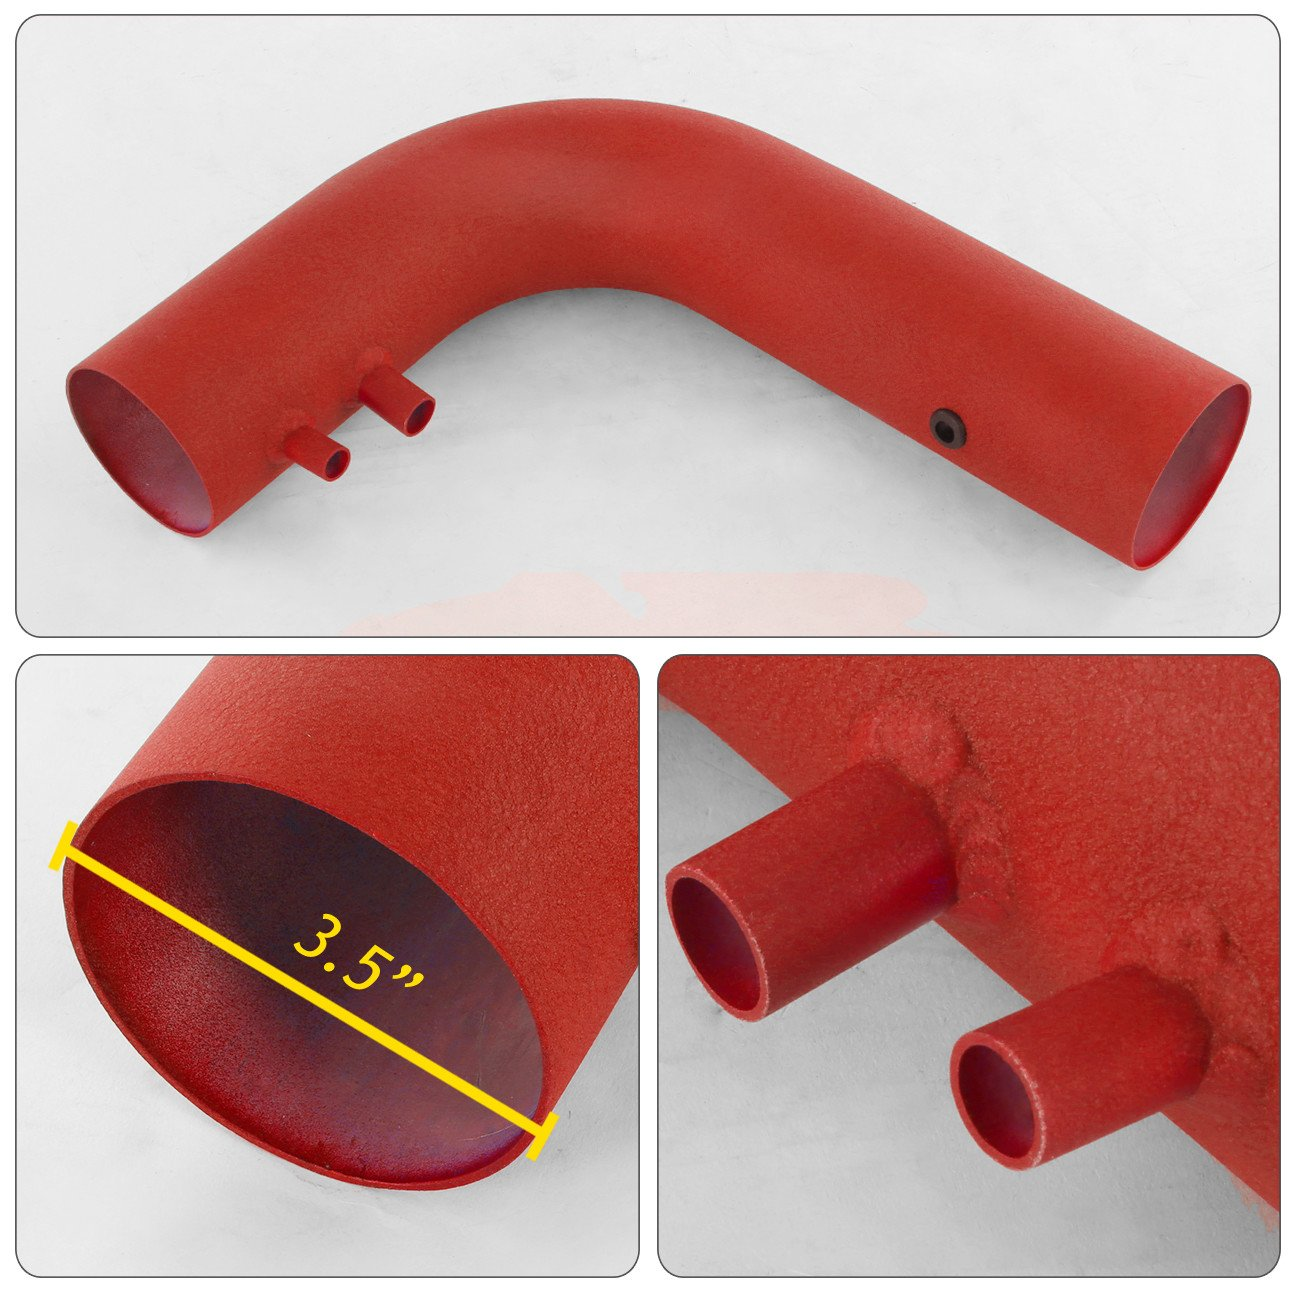 For Ford F150 F250 Expedition Heritage Lincoln Navigator V8 5.4L 4.6L 5.4 4.6 Liter High Flow Induction Air Intake System Heat Shield Red Wrinkle Piping Kit